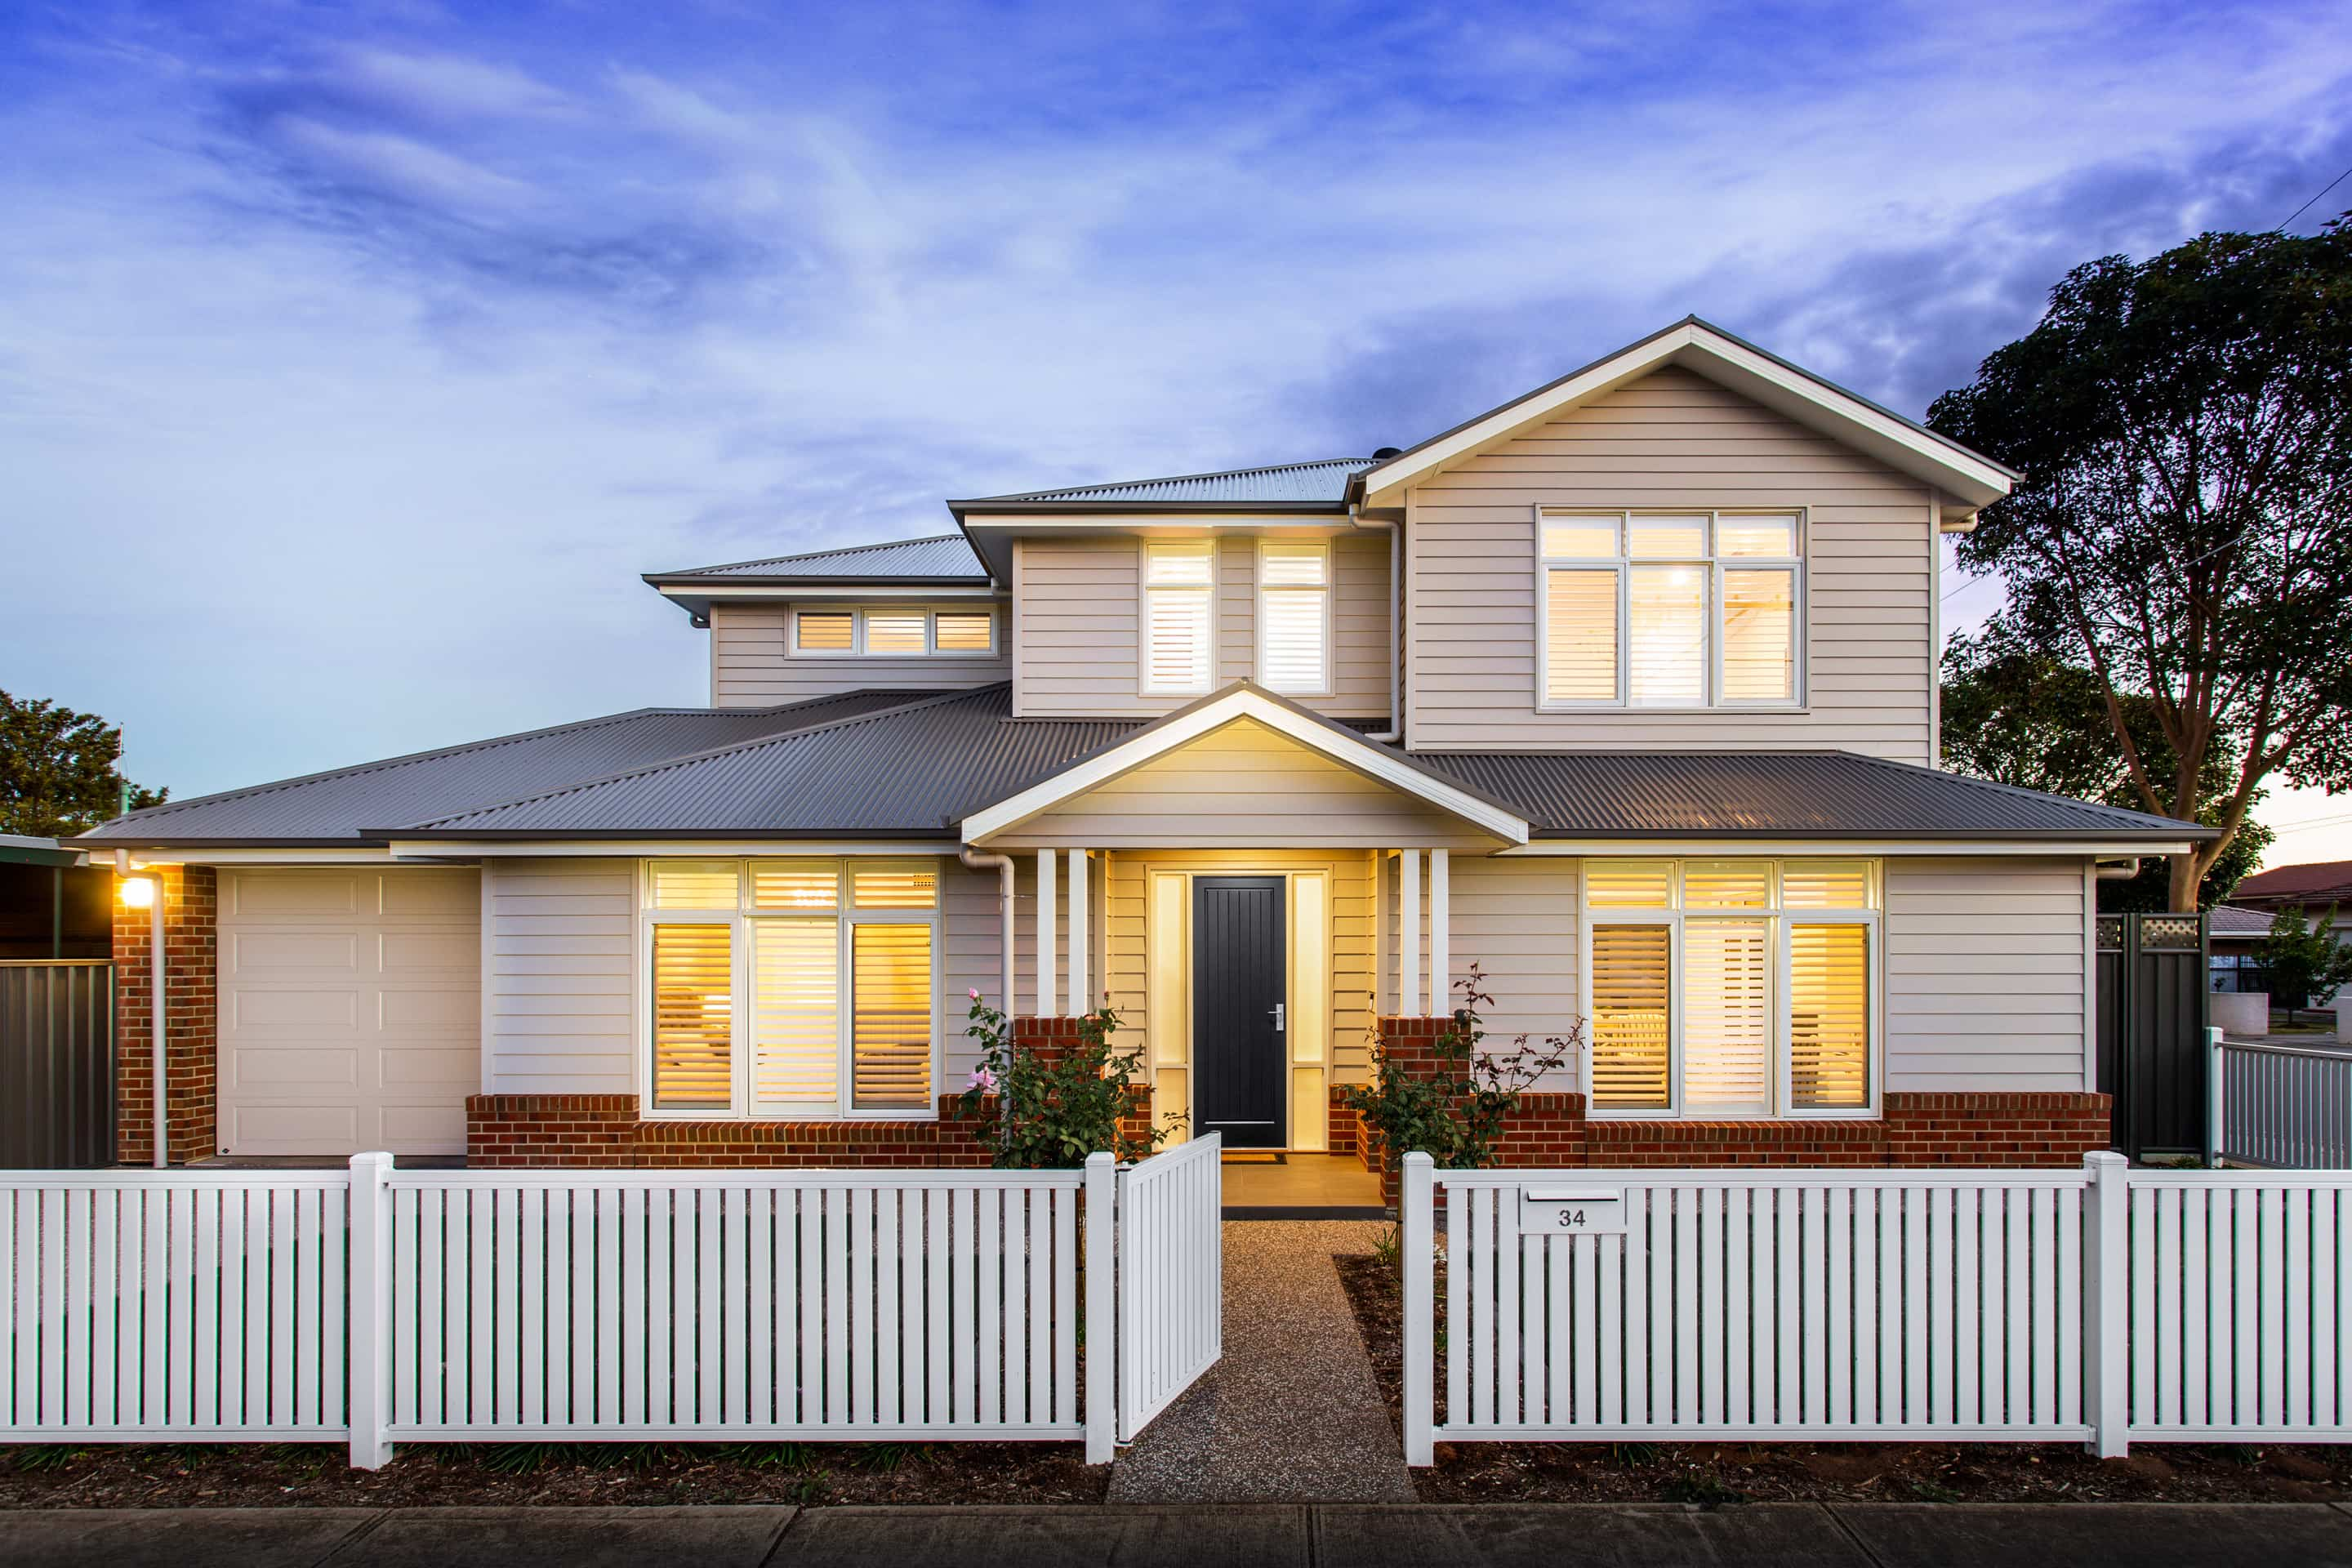 custom home builder Adelaide, Hampton's styled home Adelaide